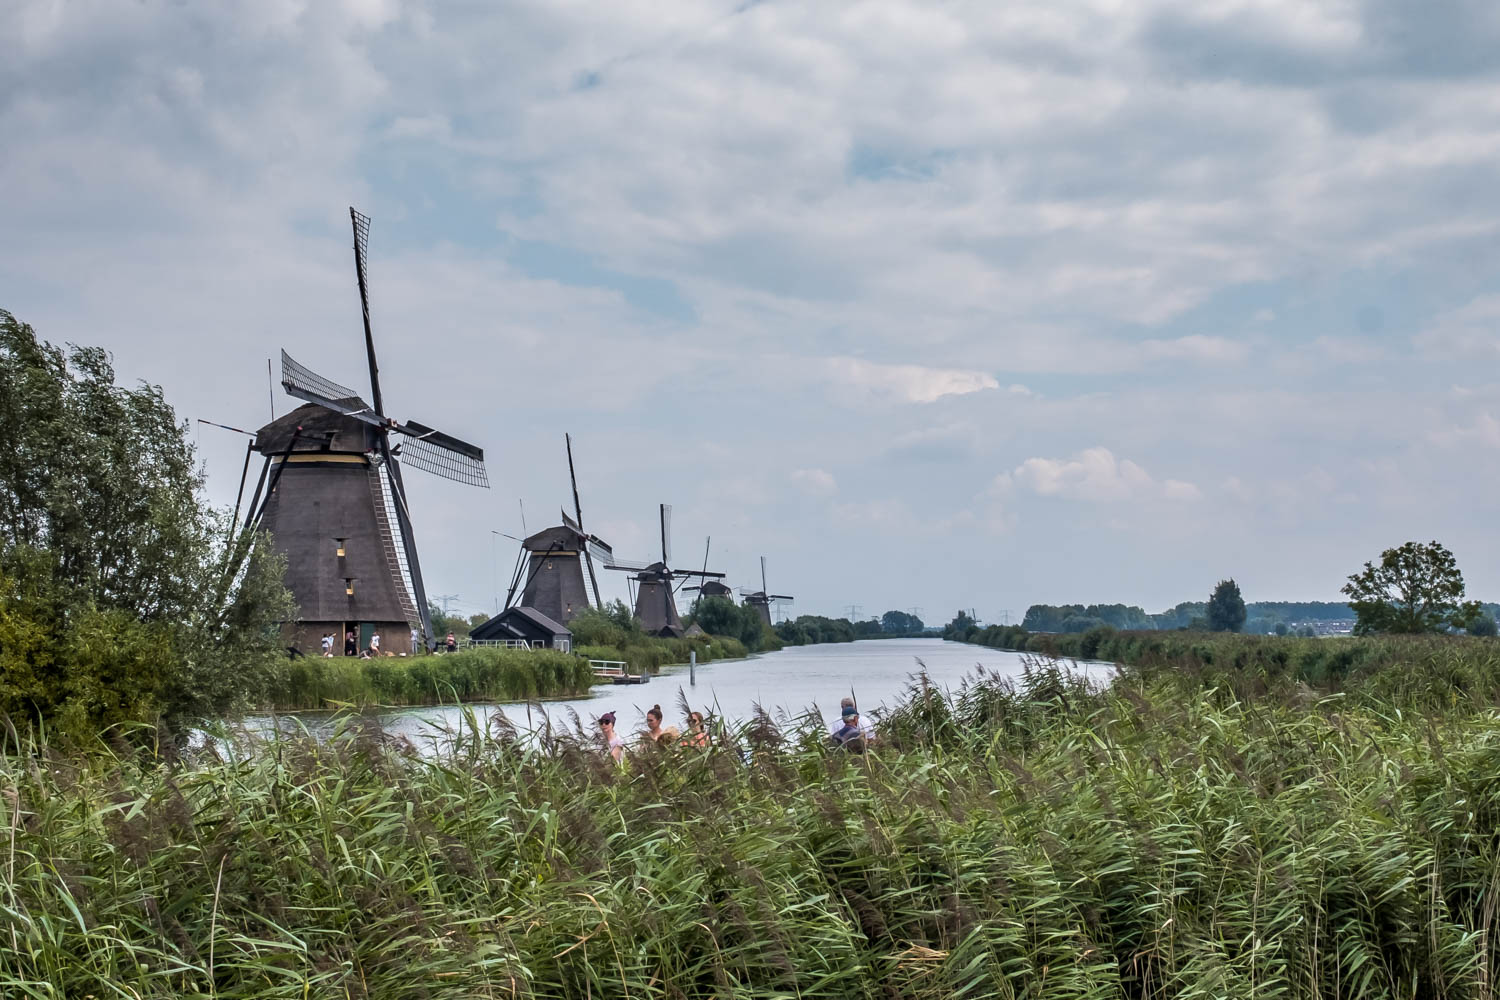 Beautiful places to visit in Netherlands countryside